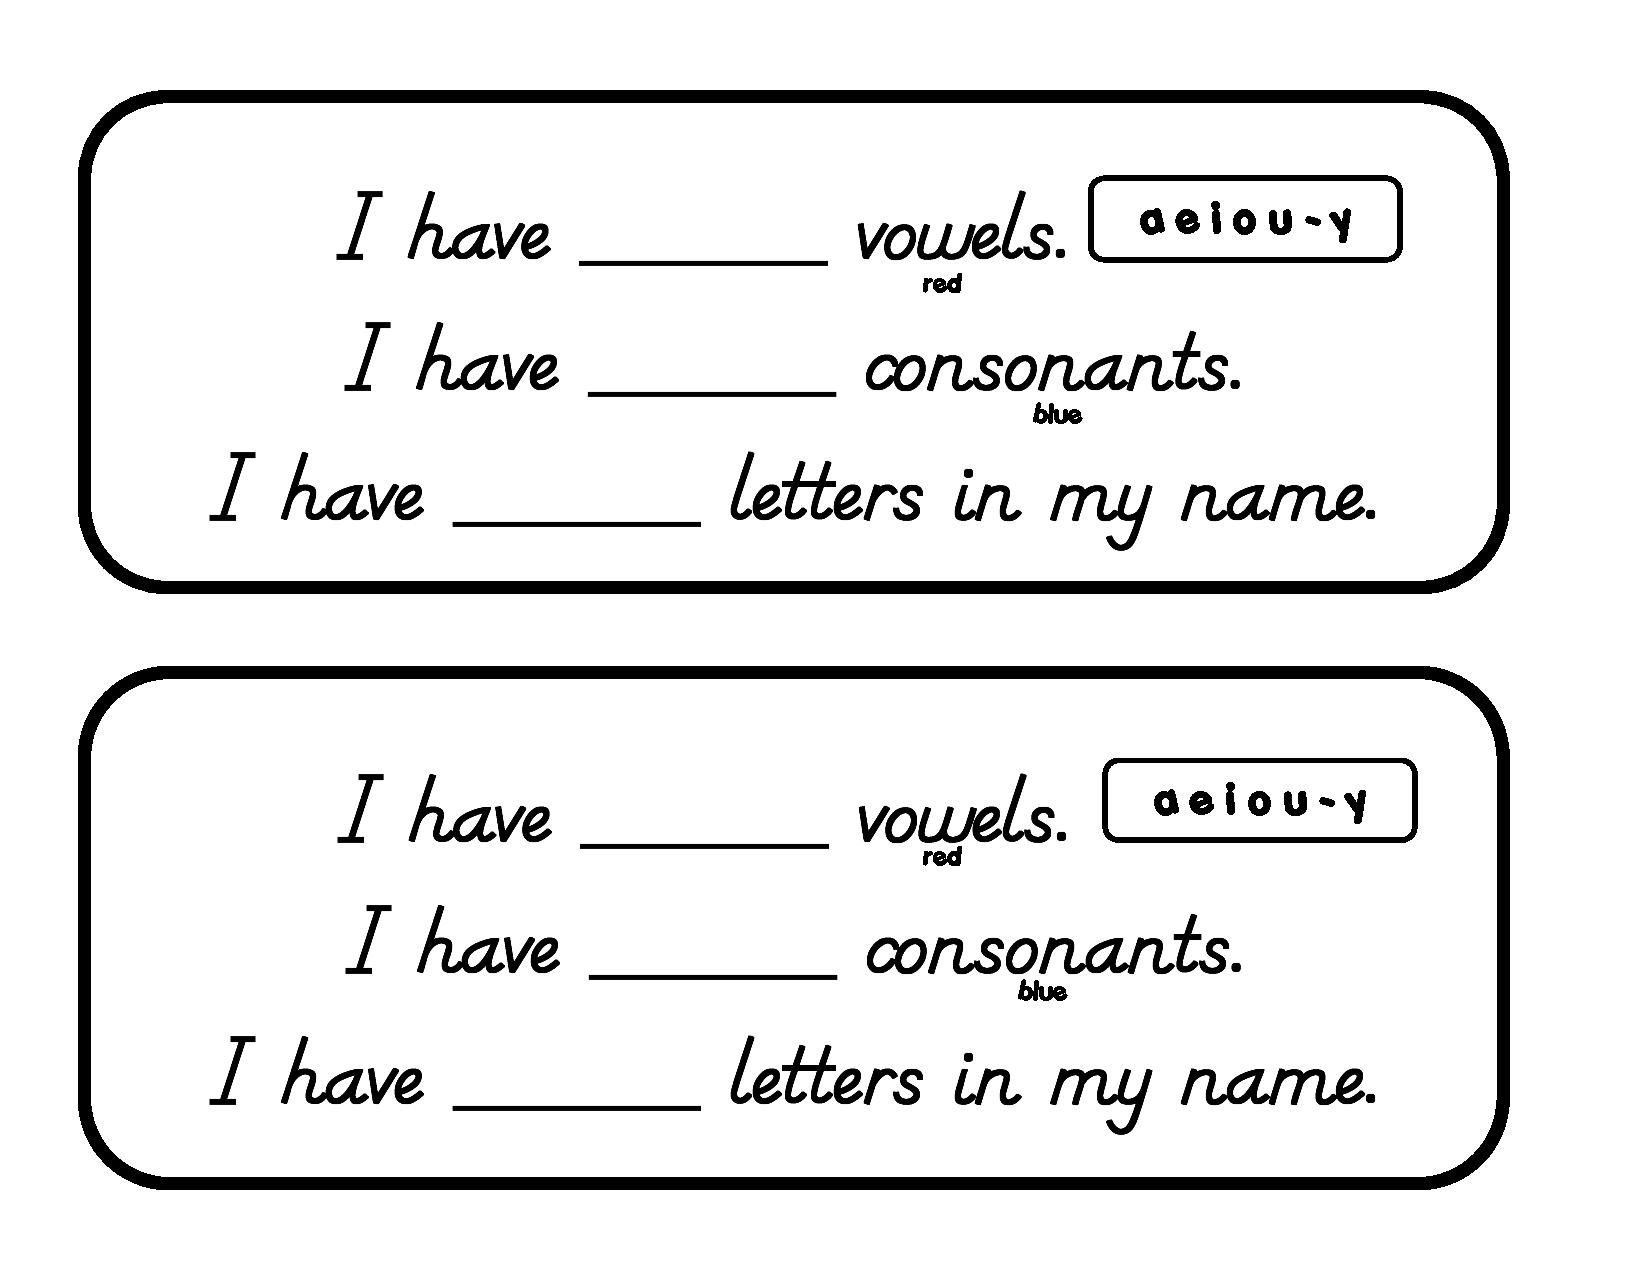 Vowels And Consonants In Name